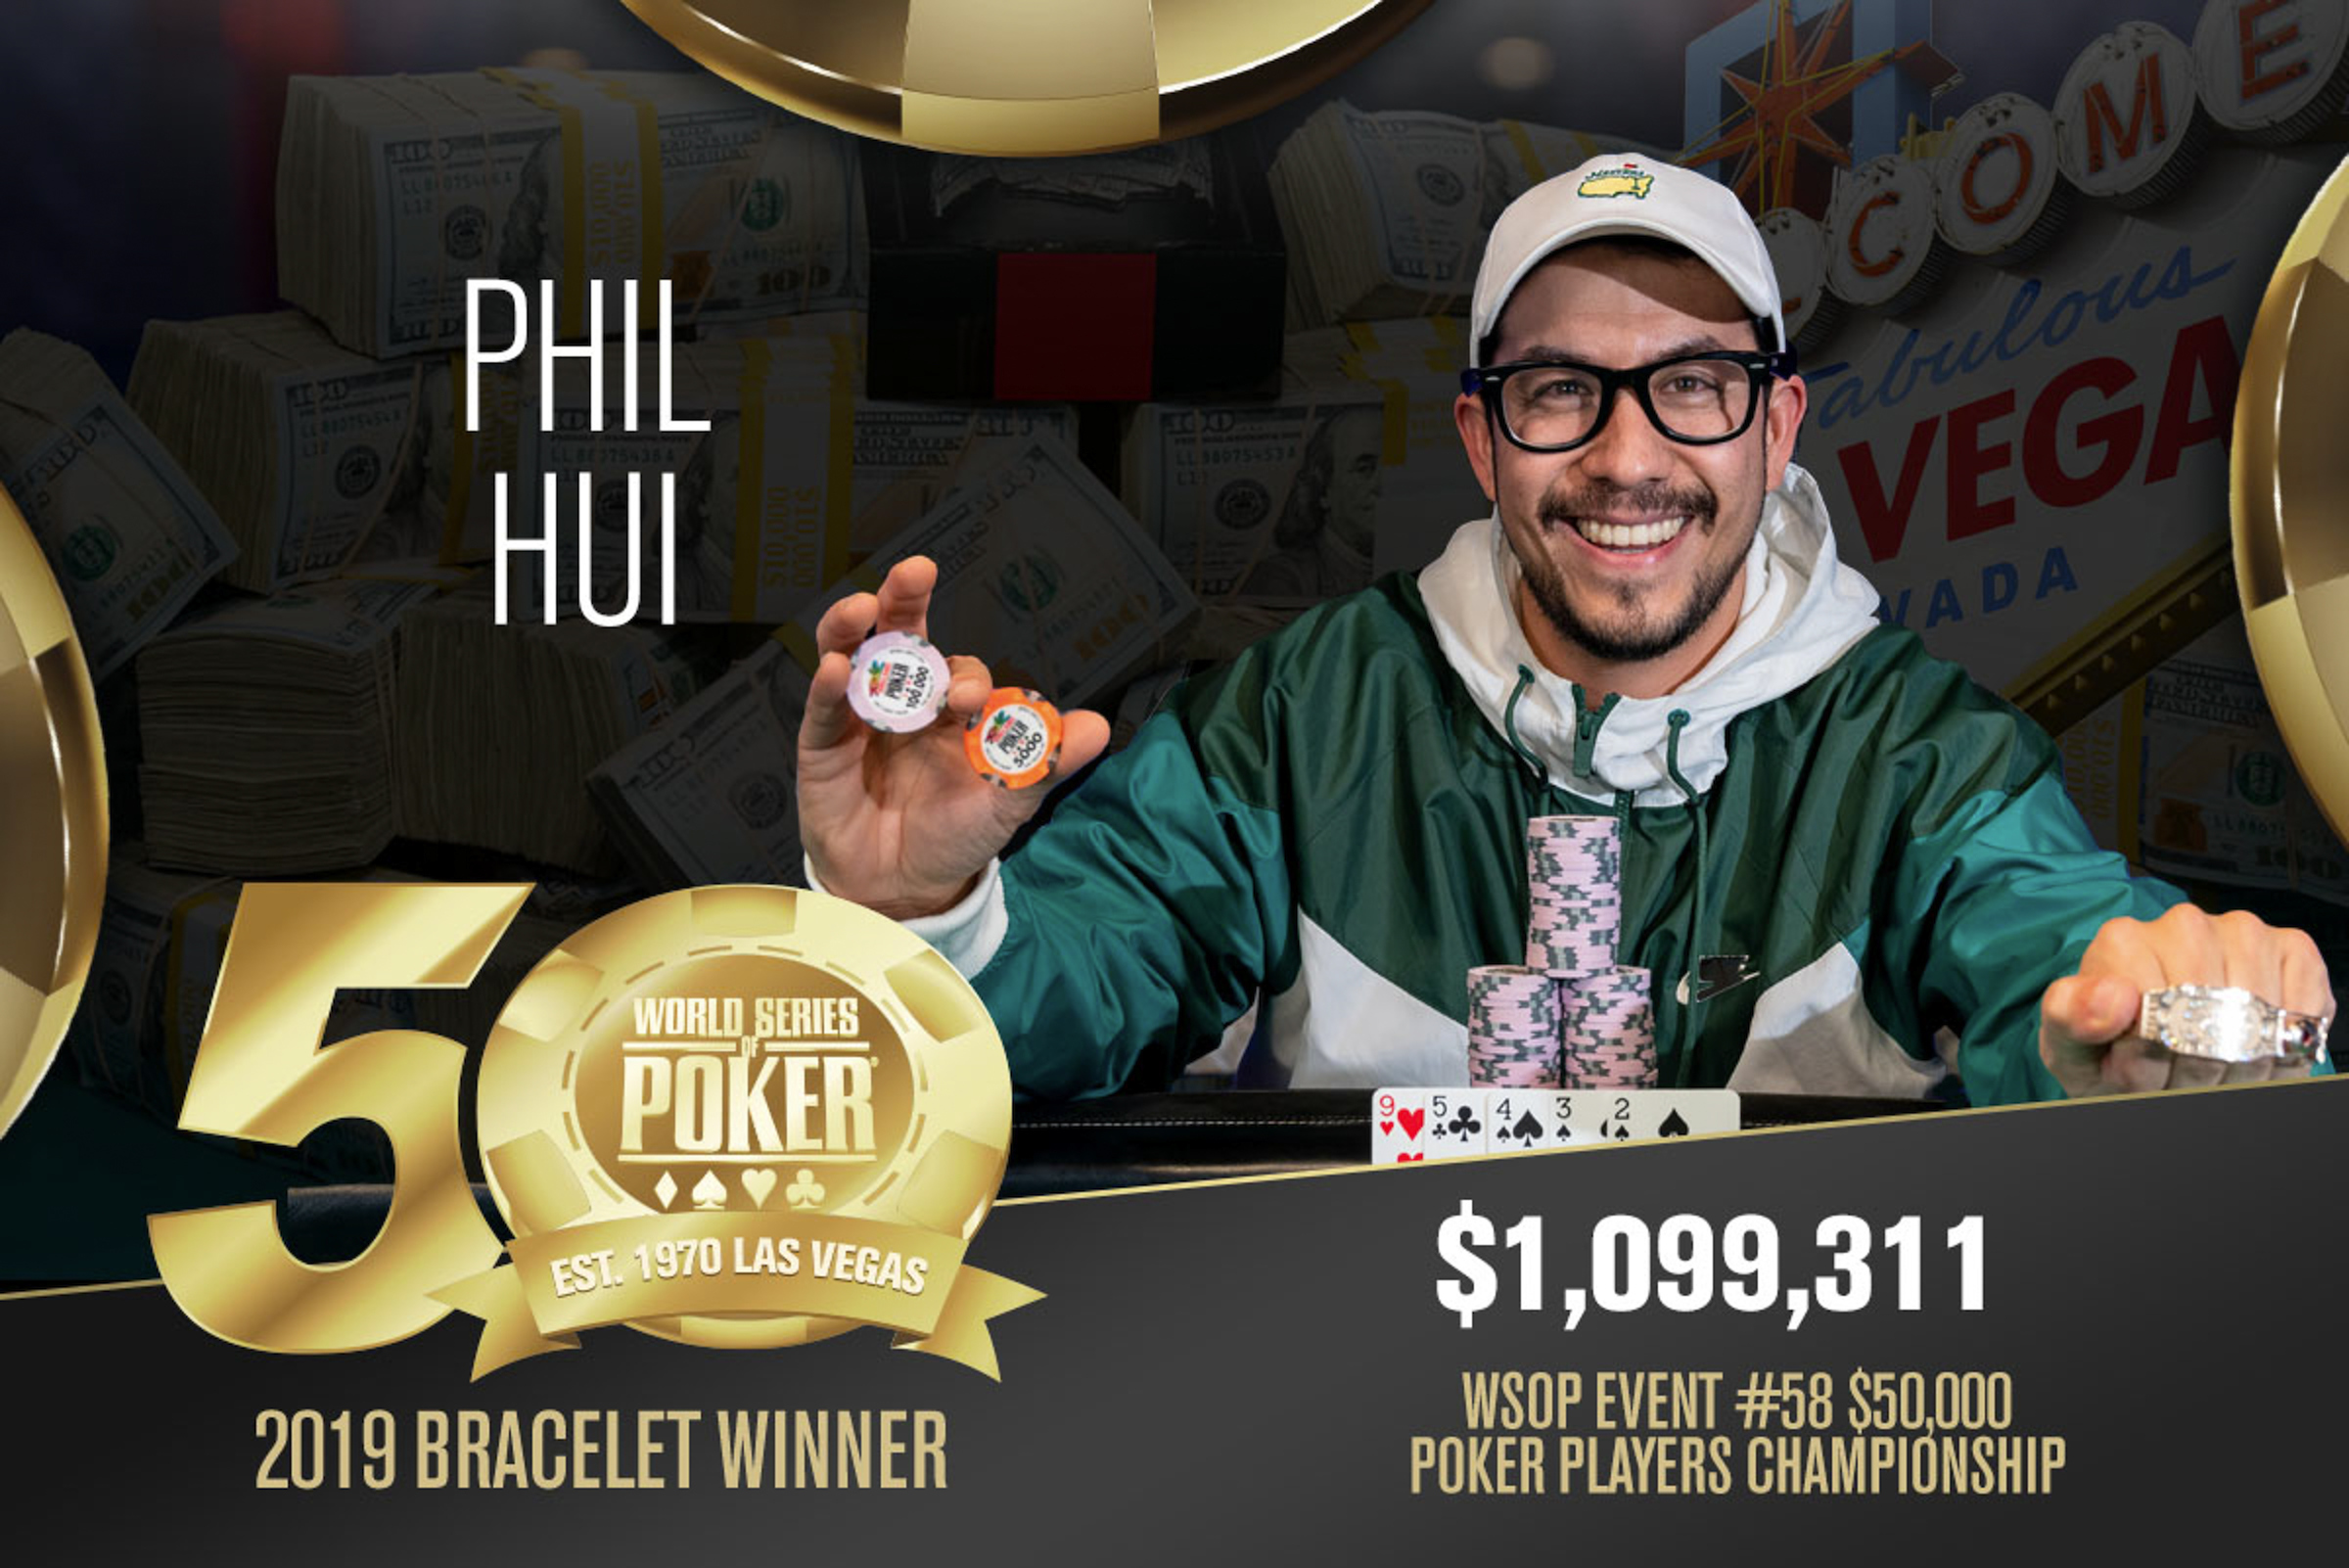 Phil Hui WSOP winner